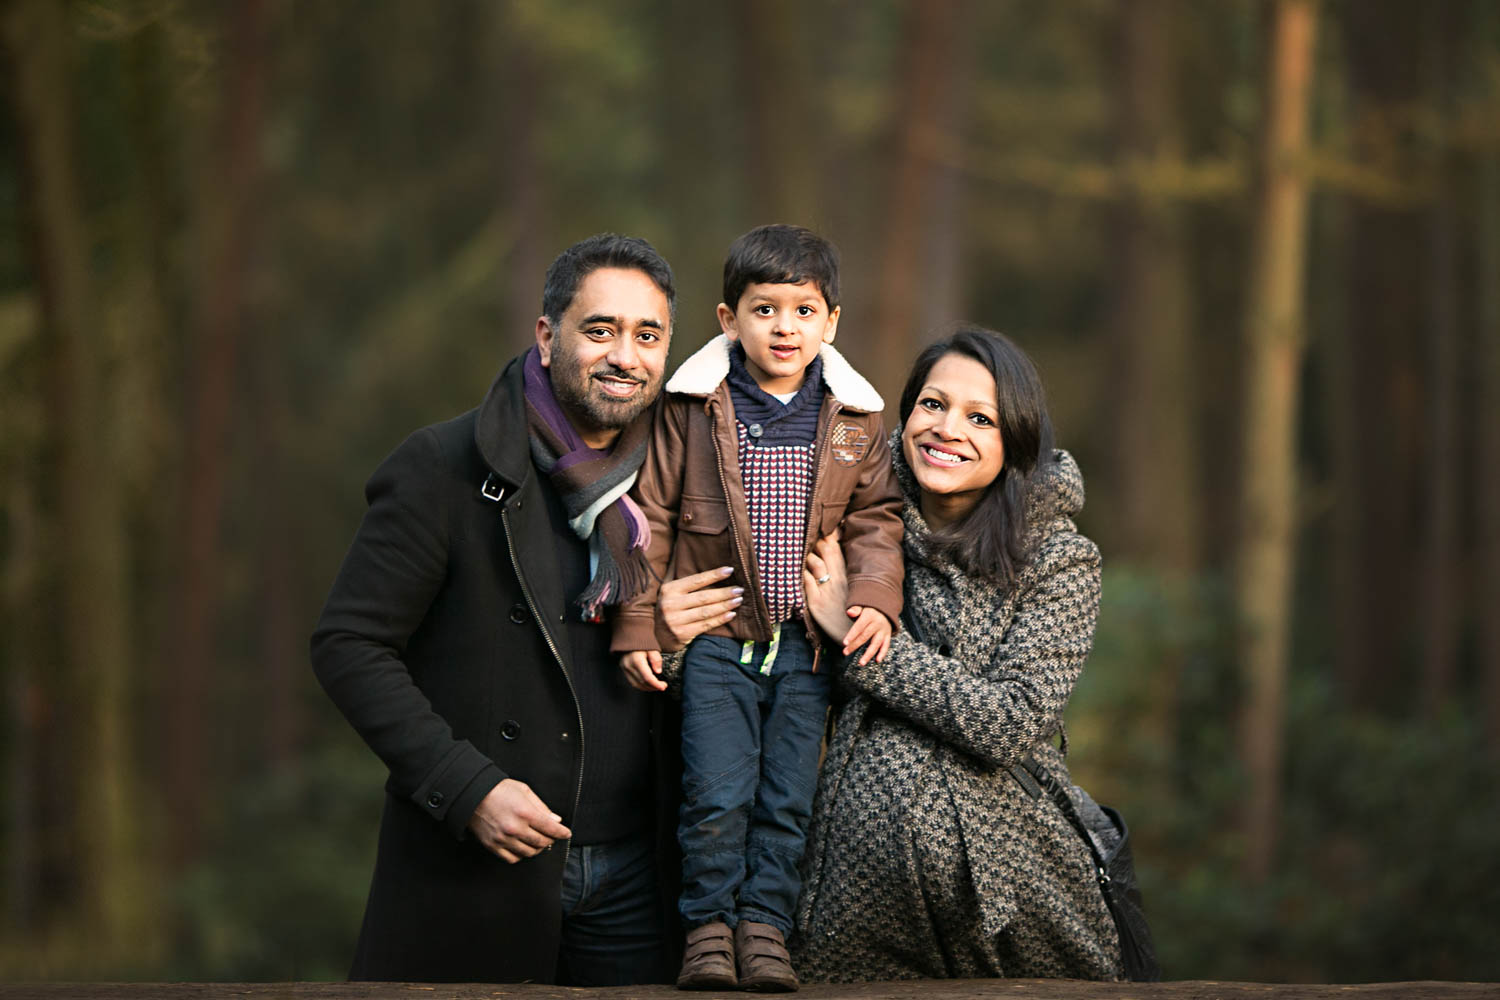 Bedford And Olney Milton Keynes Family Photography Rachel